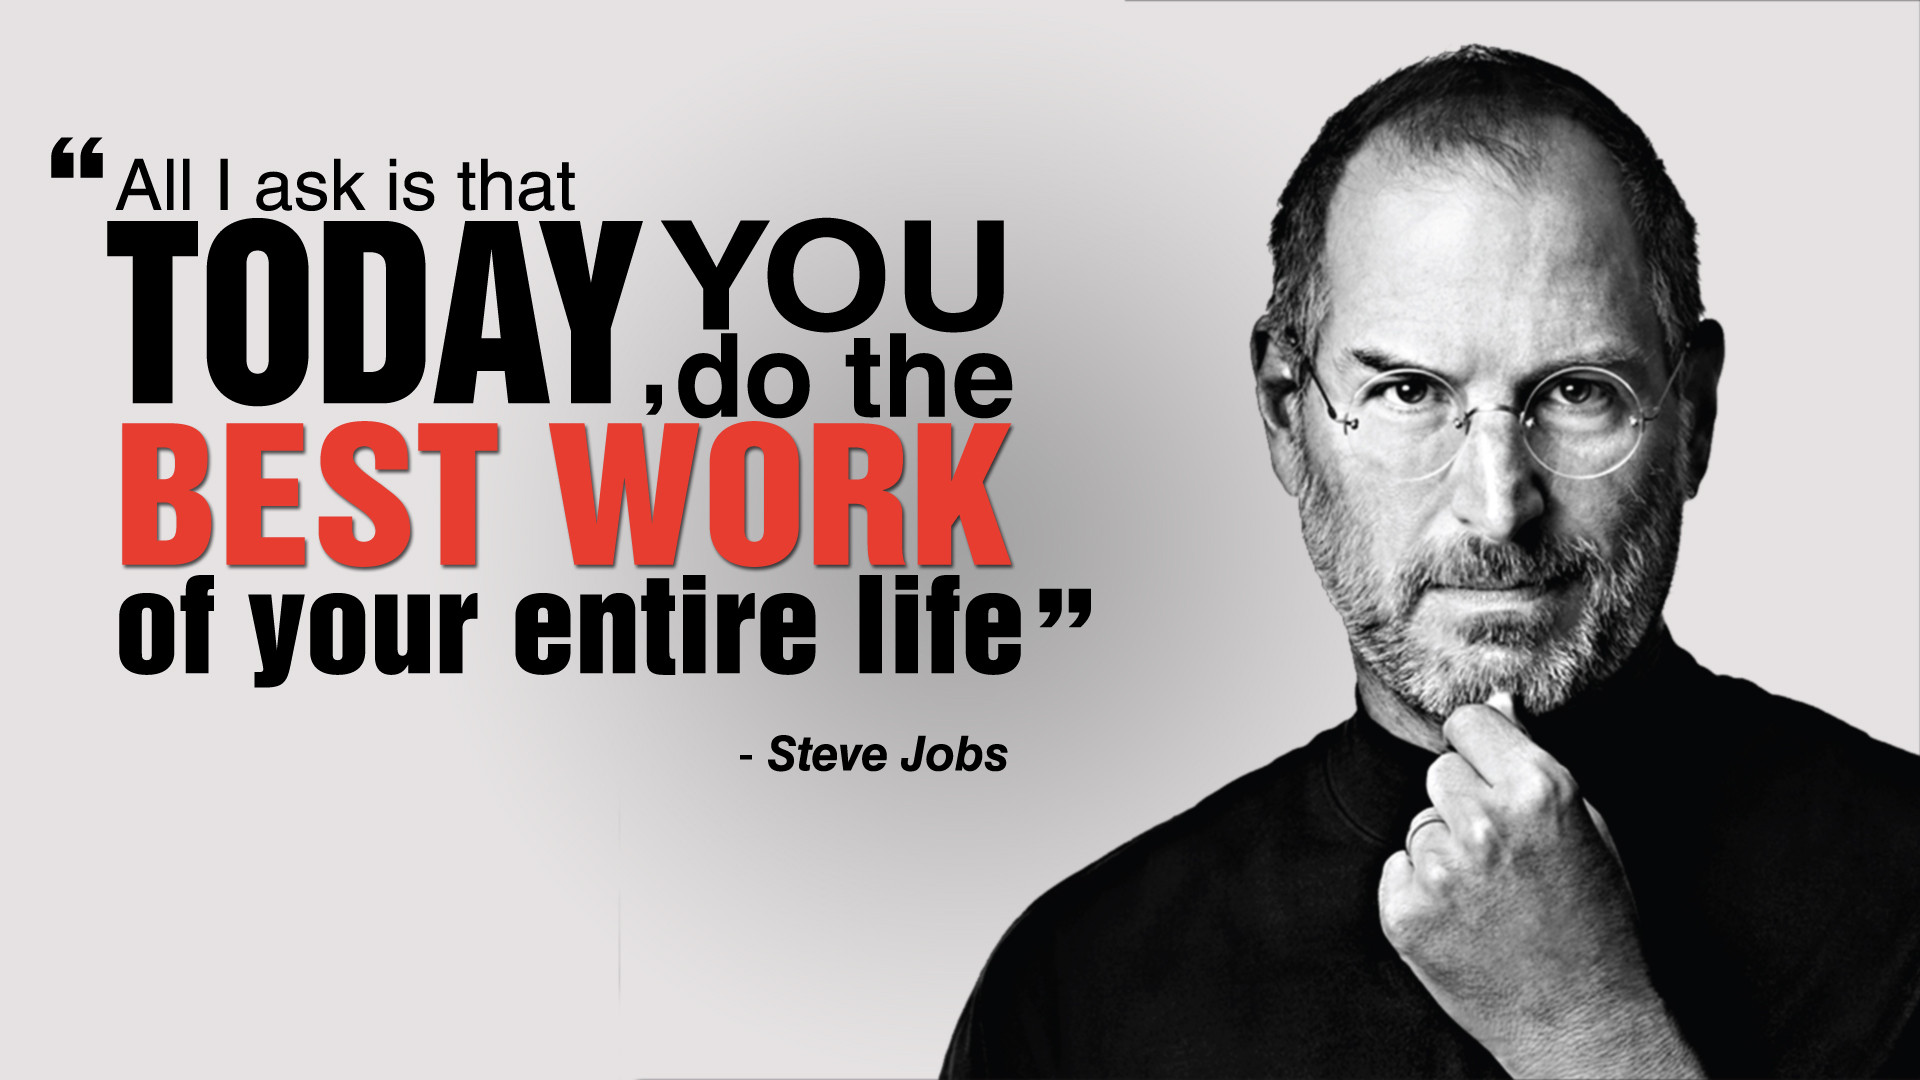 Steve Jobs motivational quote